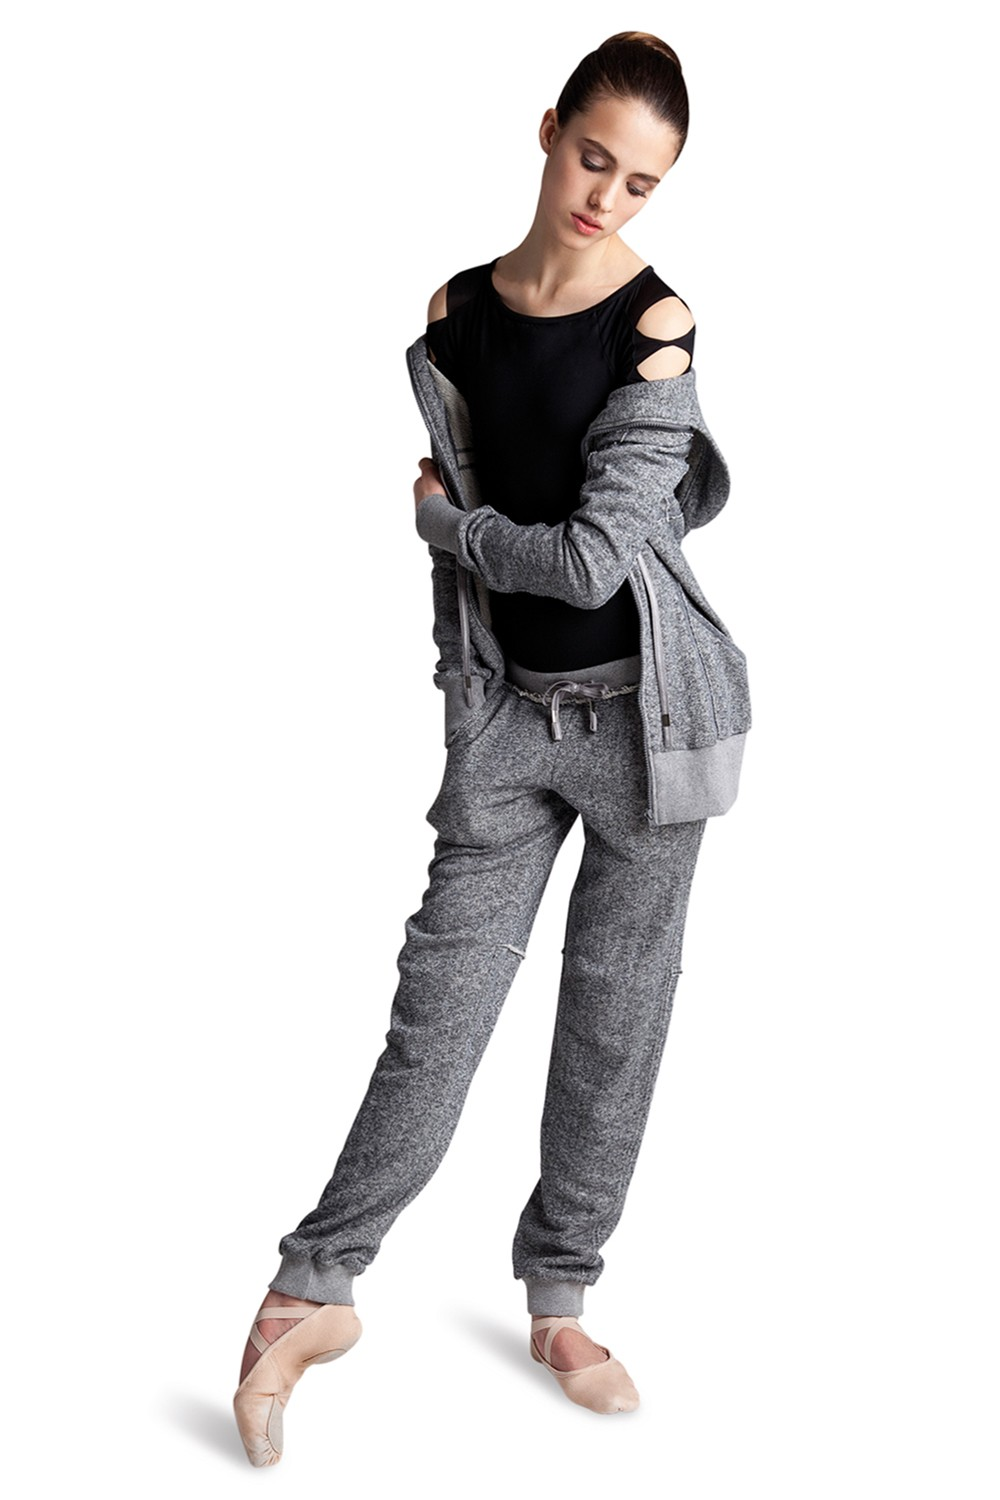 Raw Edge Hooded Jack Women's Dance Warmups